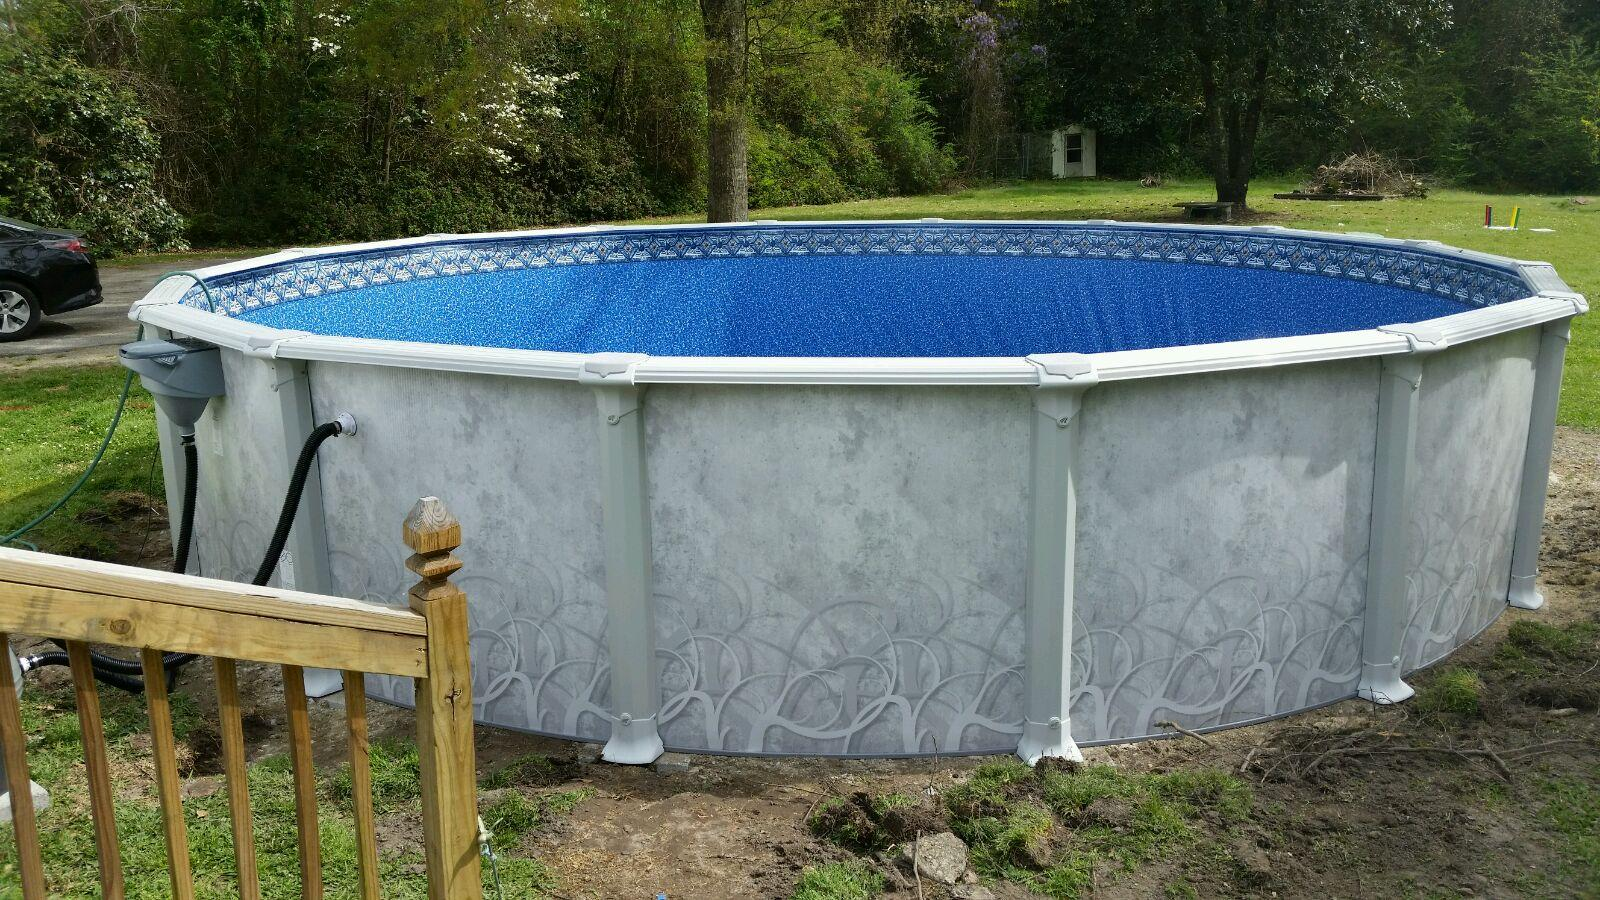 Above ground pool atlanta g a complete pool packages from for Top of the line above ground pools